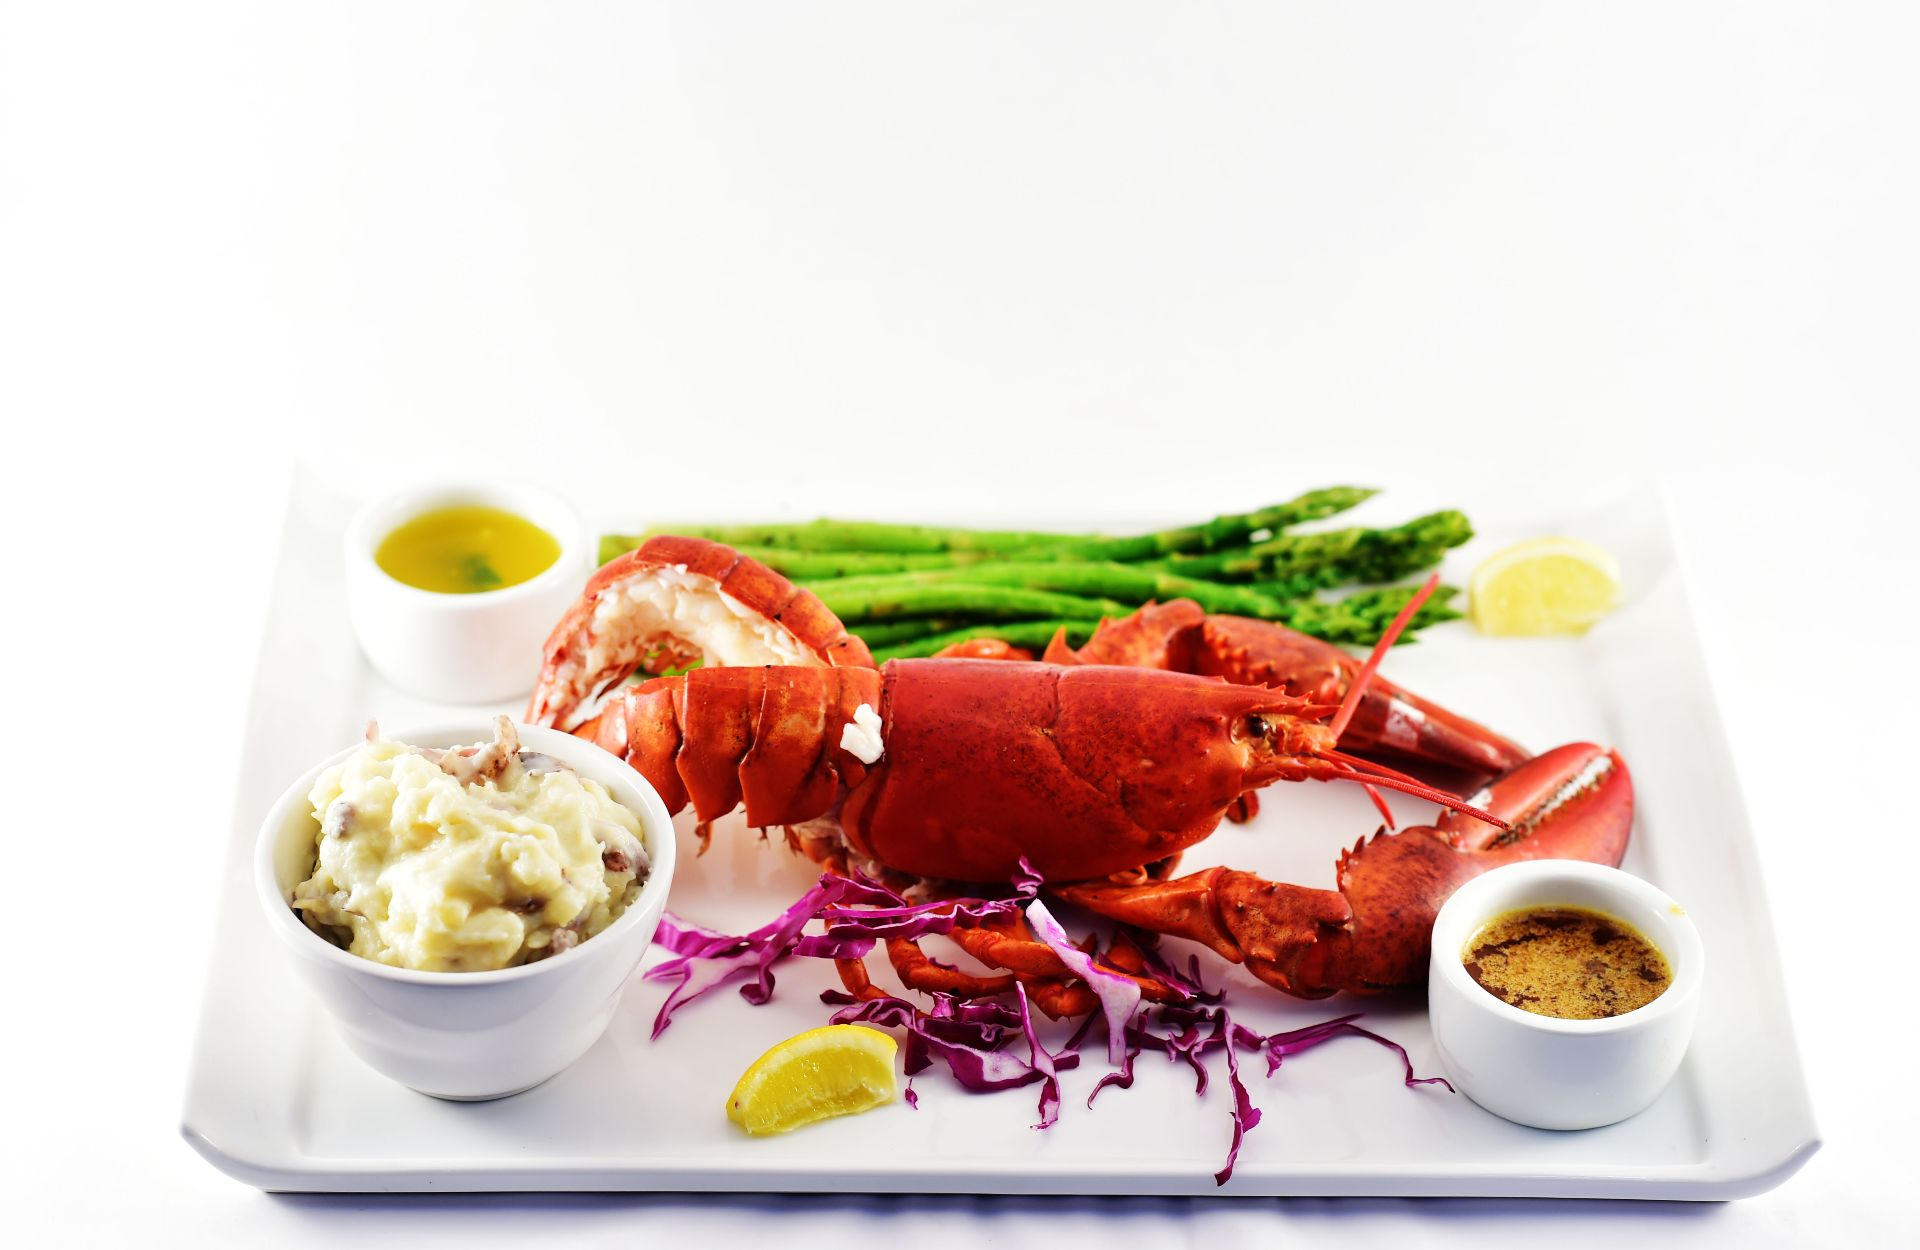 Steamed whole lobster with mashed potatoes, potatoes, red cabbage, lemon slice and asparagus